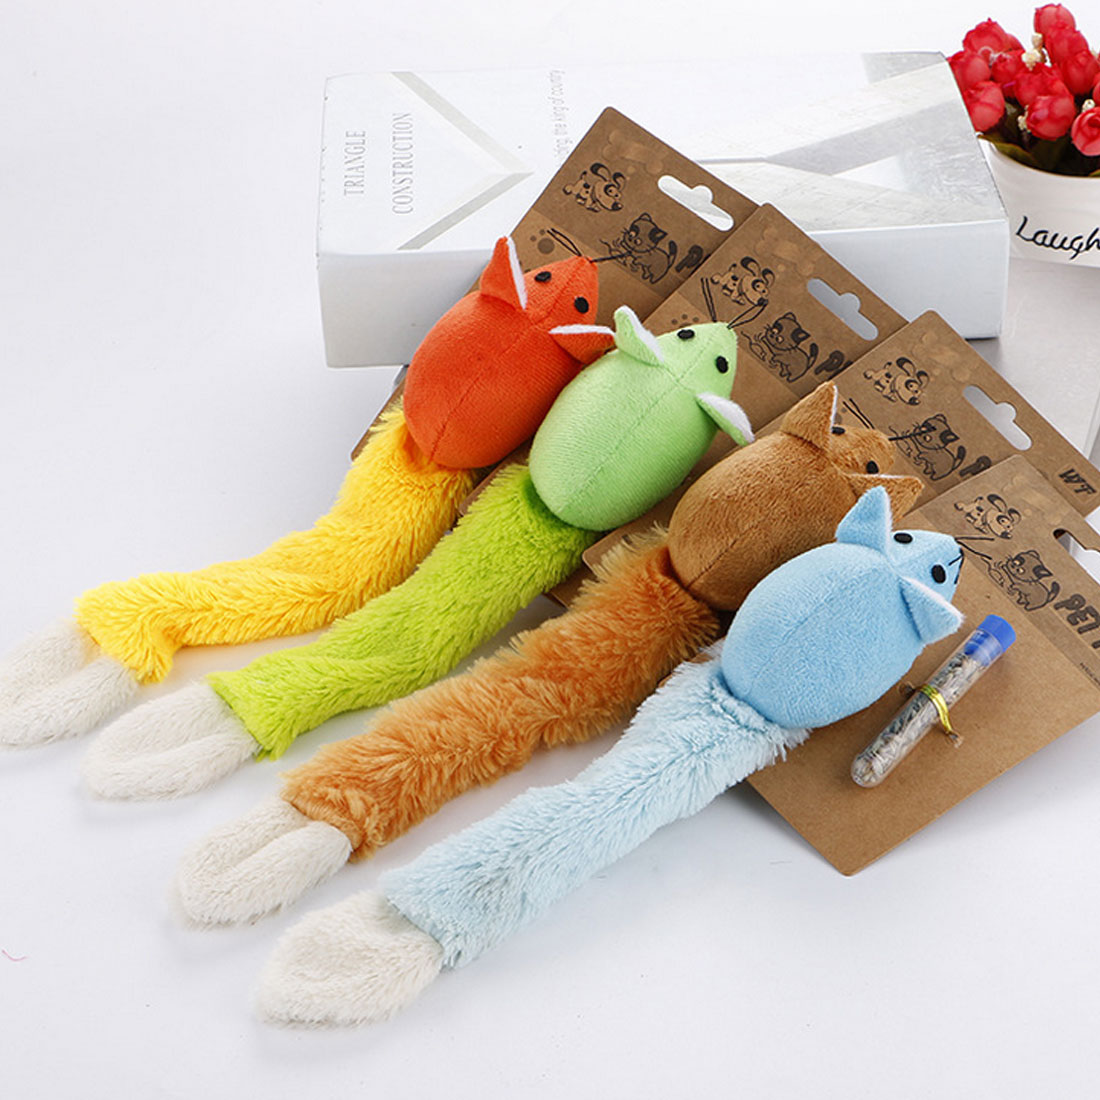 Hot Sale 1pcs Cat Toy Long Tail Mouse Teaster Funny Pet Toys Trainning Playing Interactive With Catnip